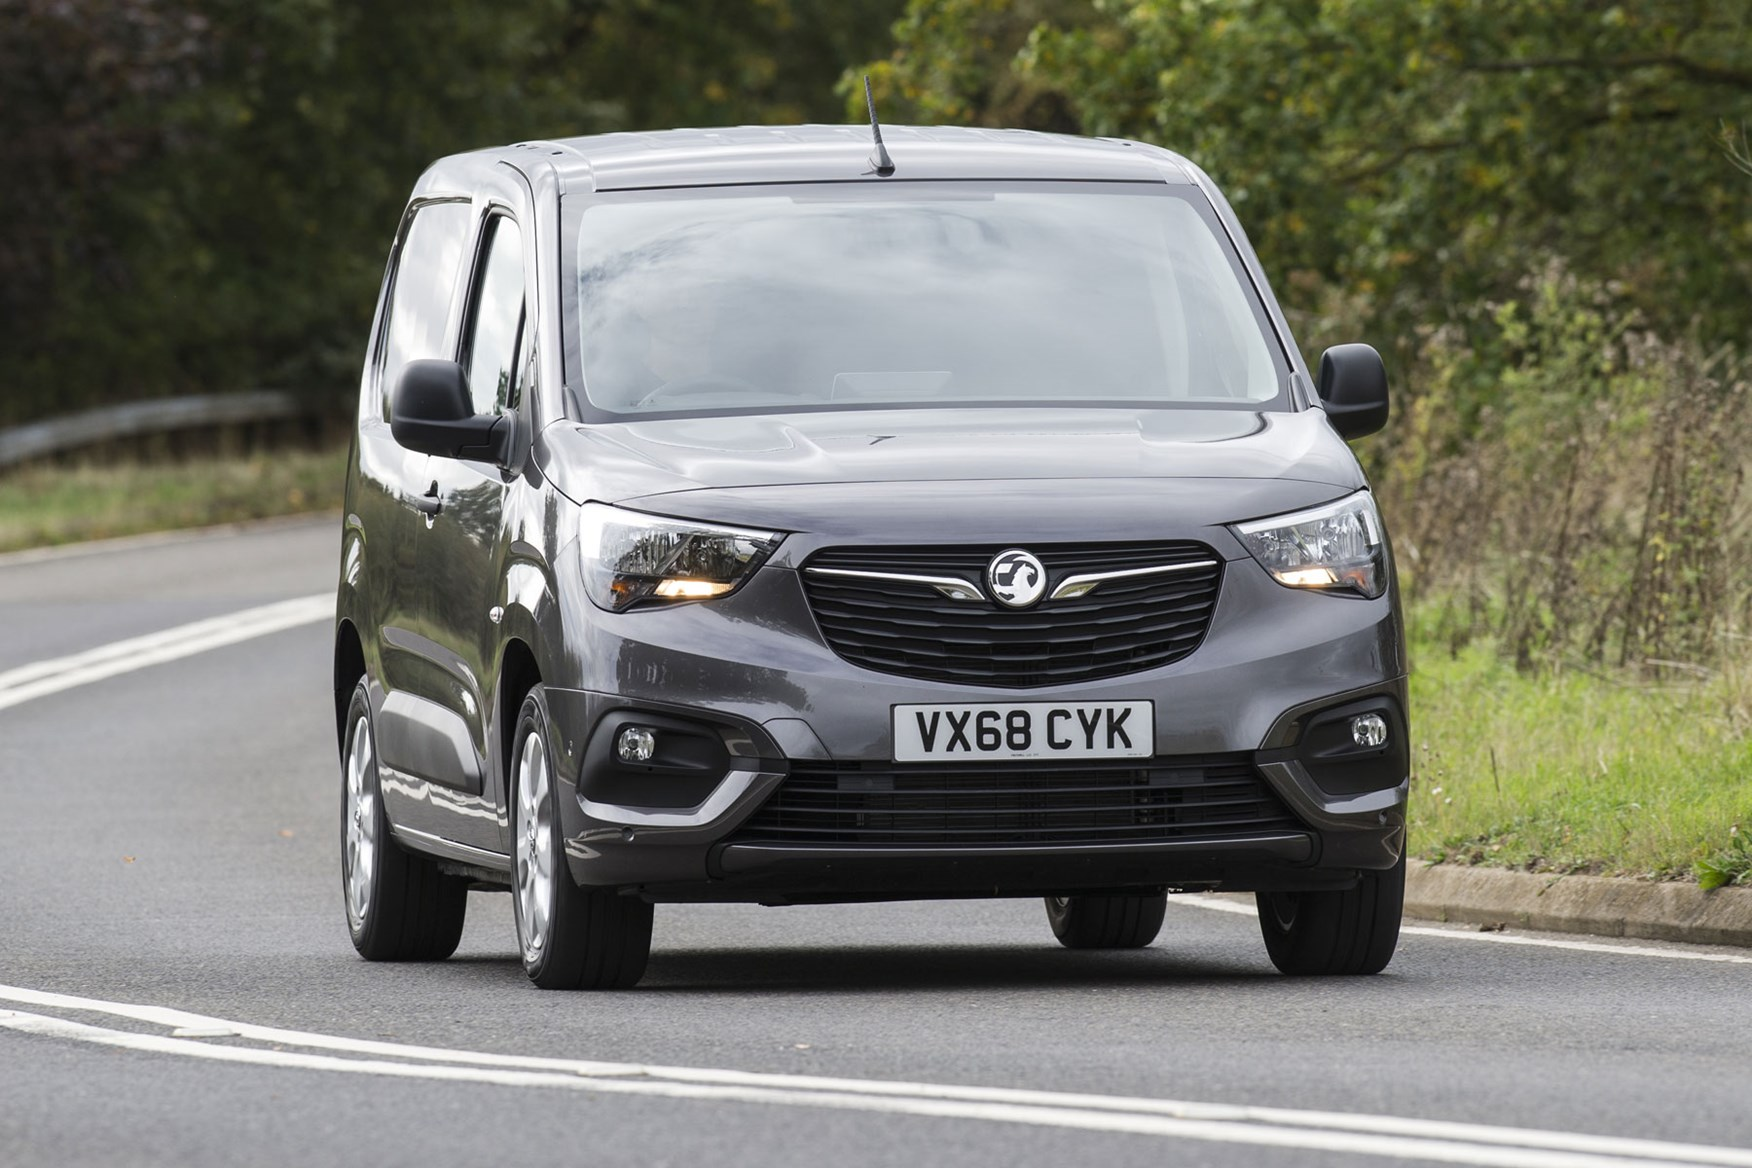 Vauxhall Combo 2019 review - grey, front view, driving